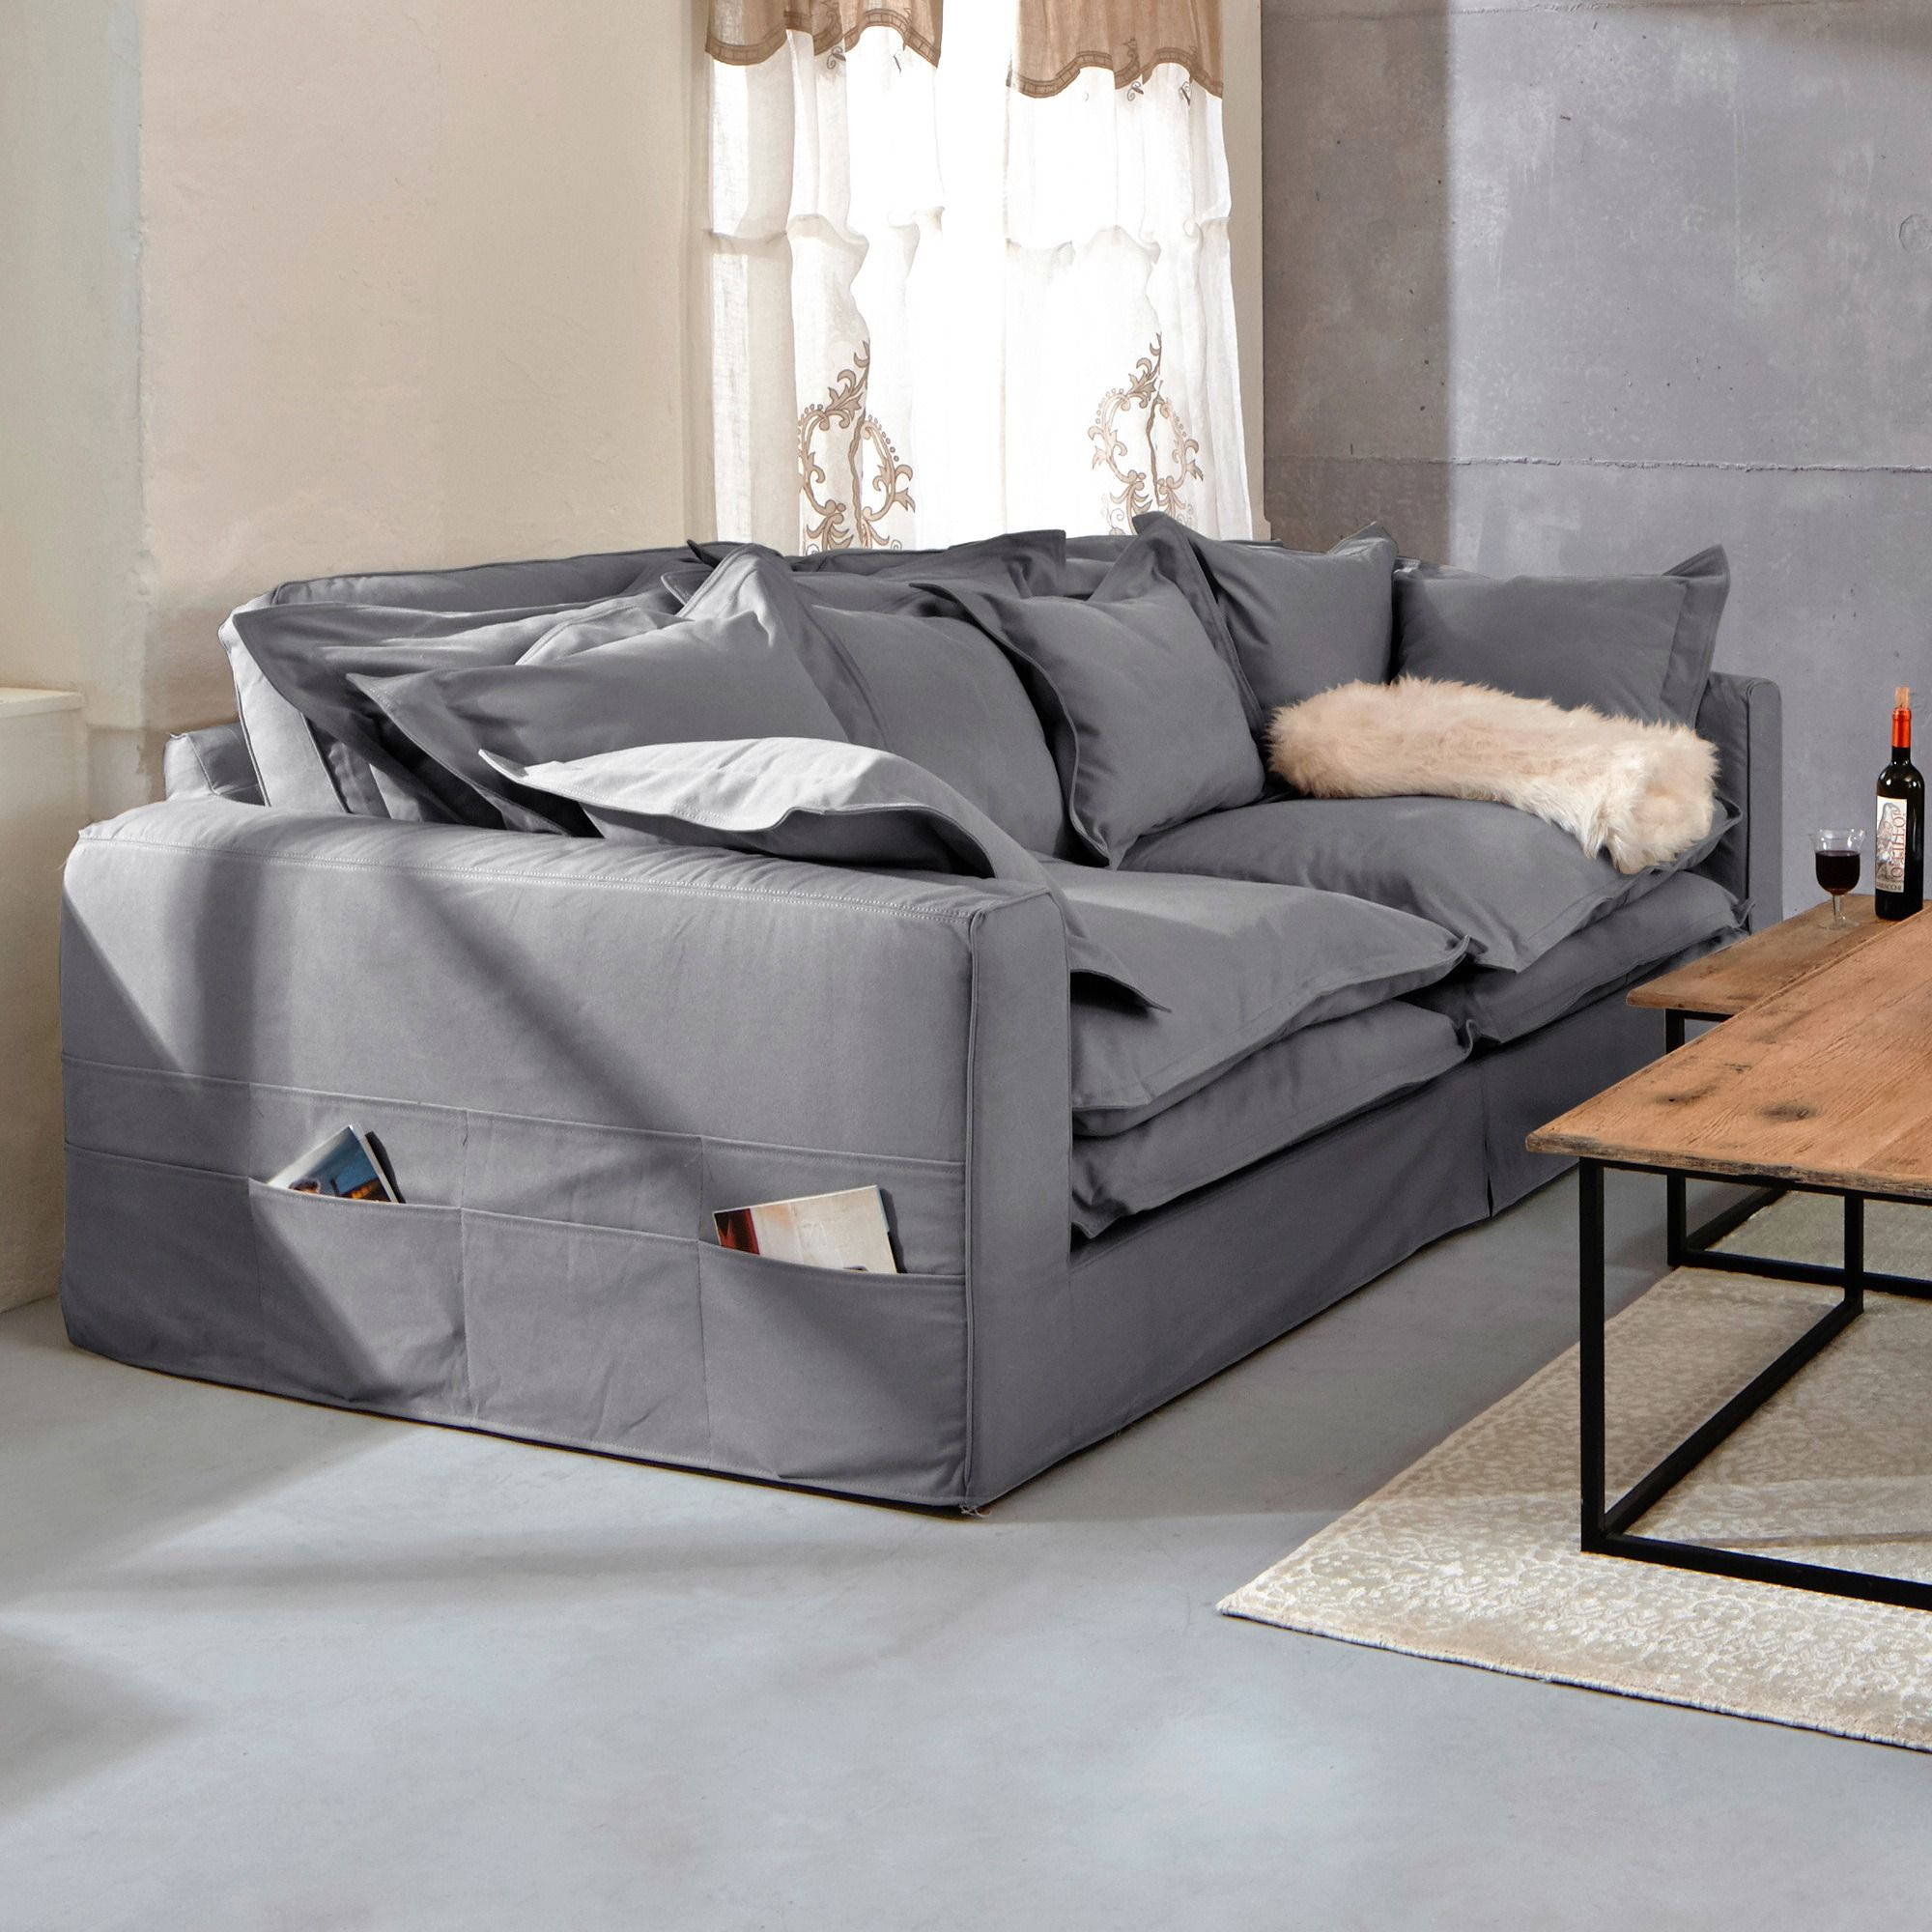 xxl sofa carcassonne grau bezug aus baumwolle online. Black Bedroom Furniture Sets. Home Design Ideas